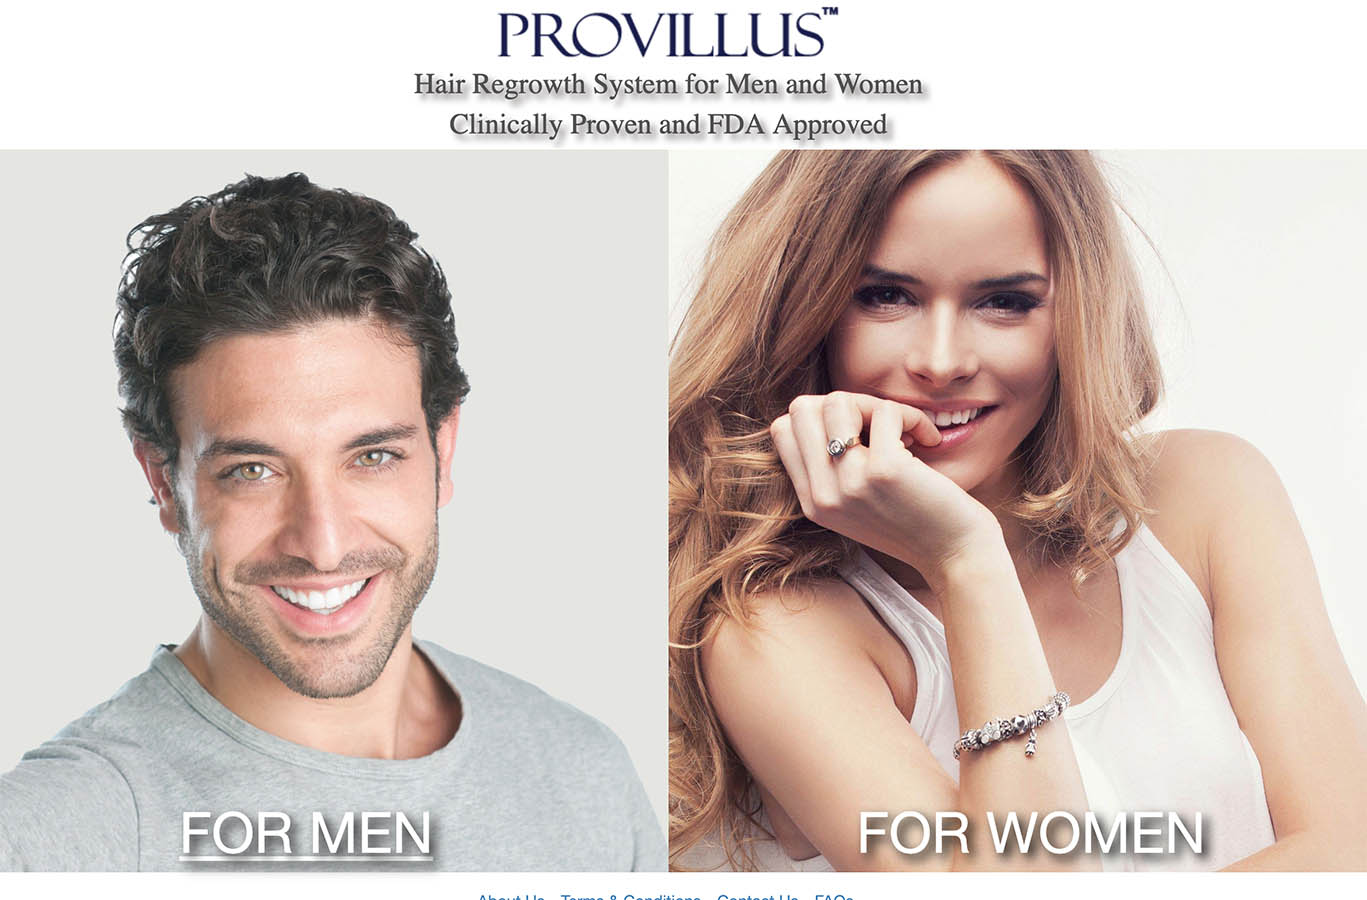 provillus uk ireland website